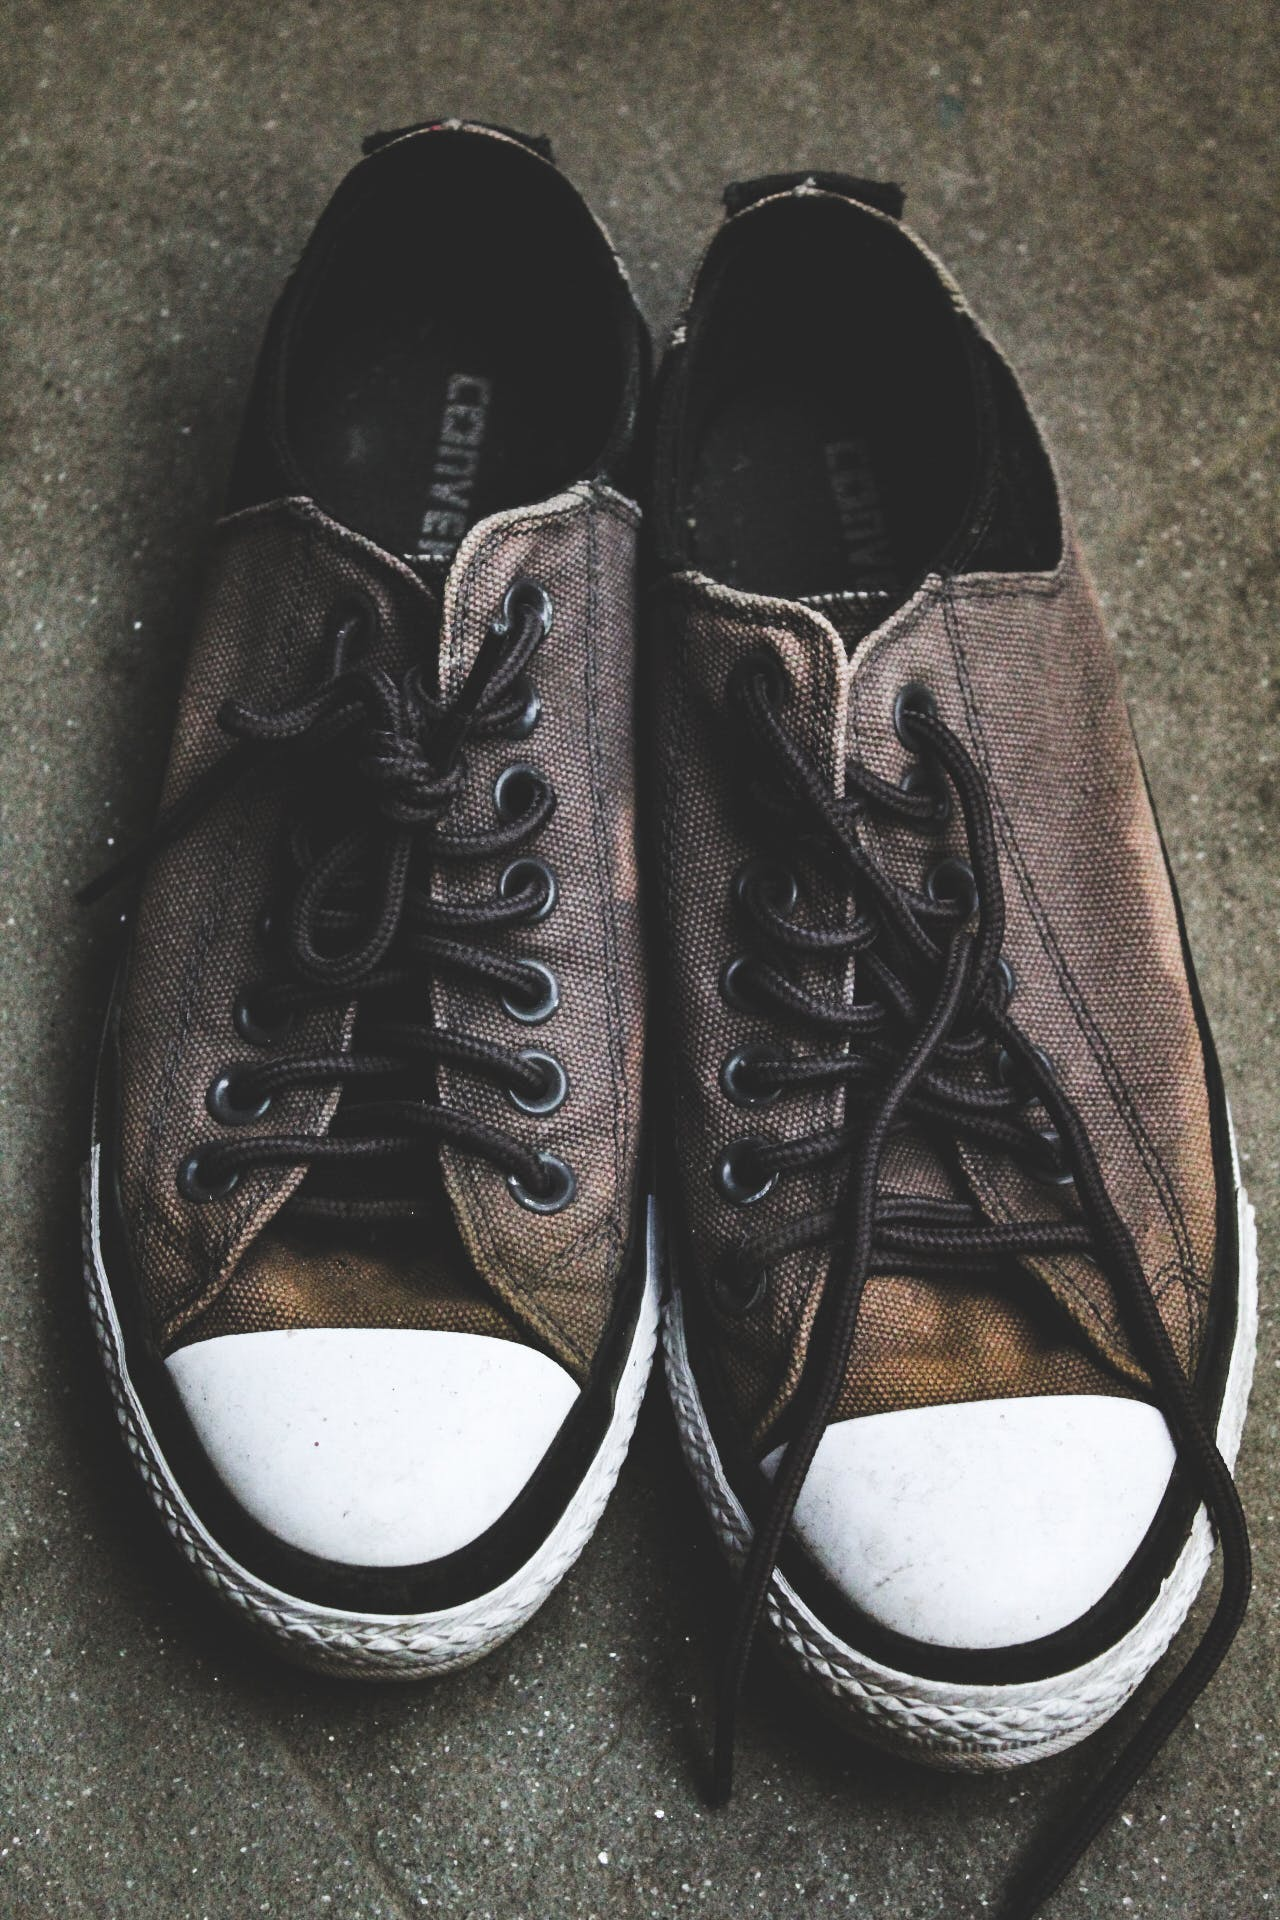 Free stock photo of casuals, converse all star, dirt, fashion